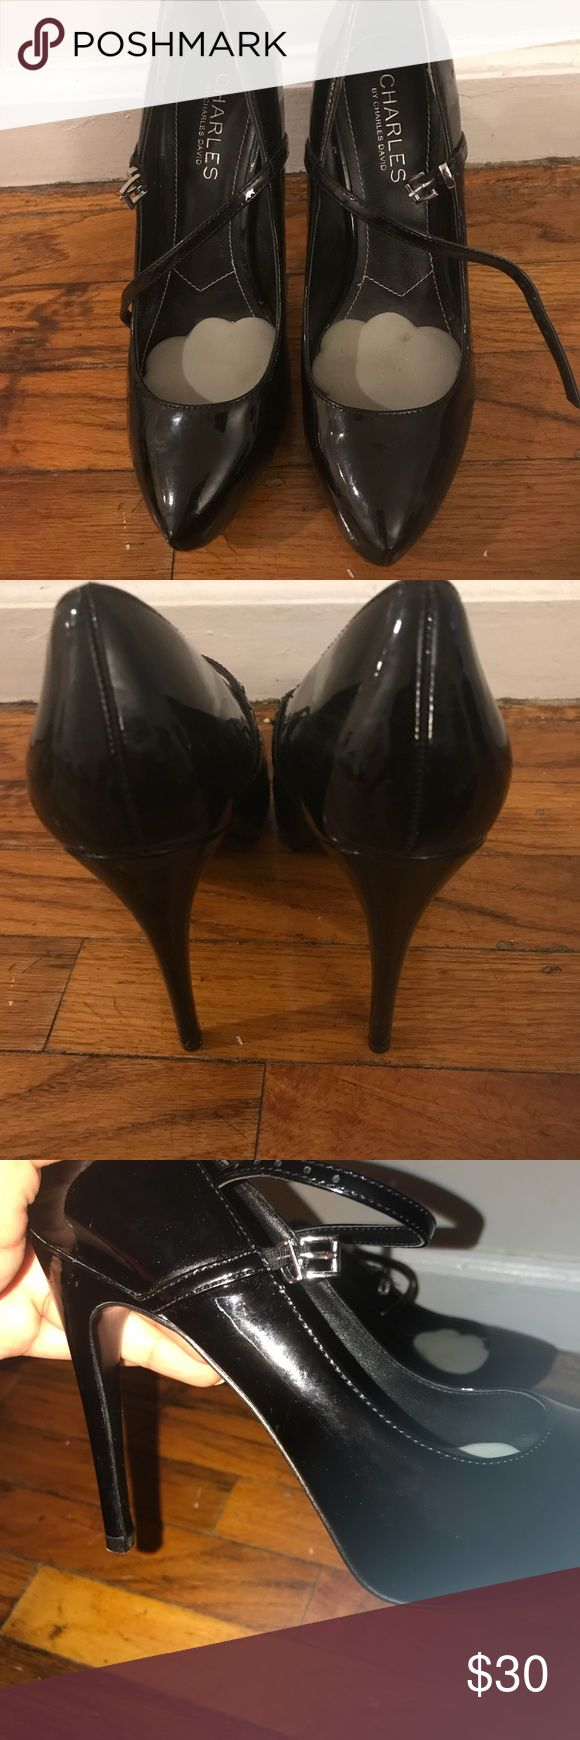 Charles David heels Black patent leather black high heels. In very good condition. Worn once or twice. Comes with shoe pads in them. Charles David Shoes Heels